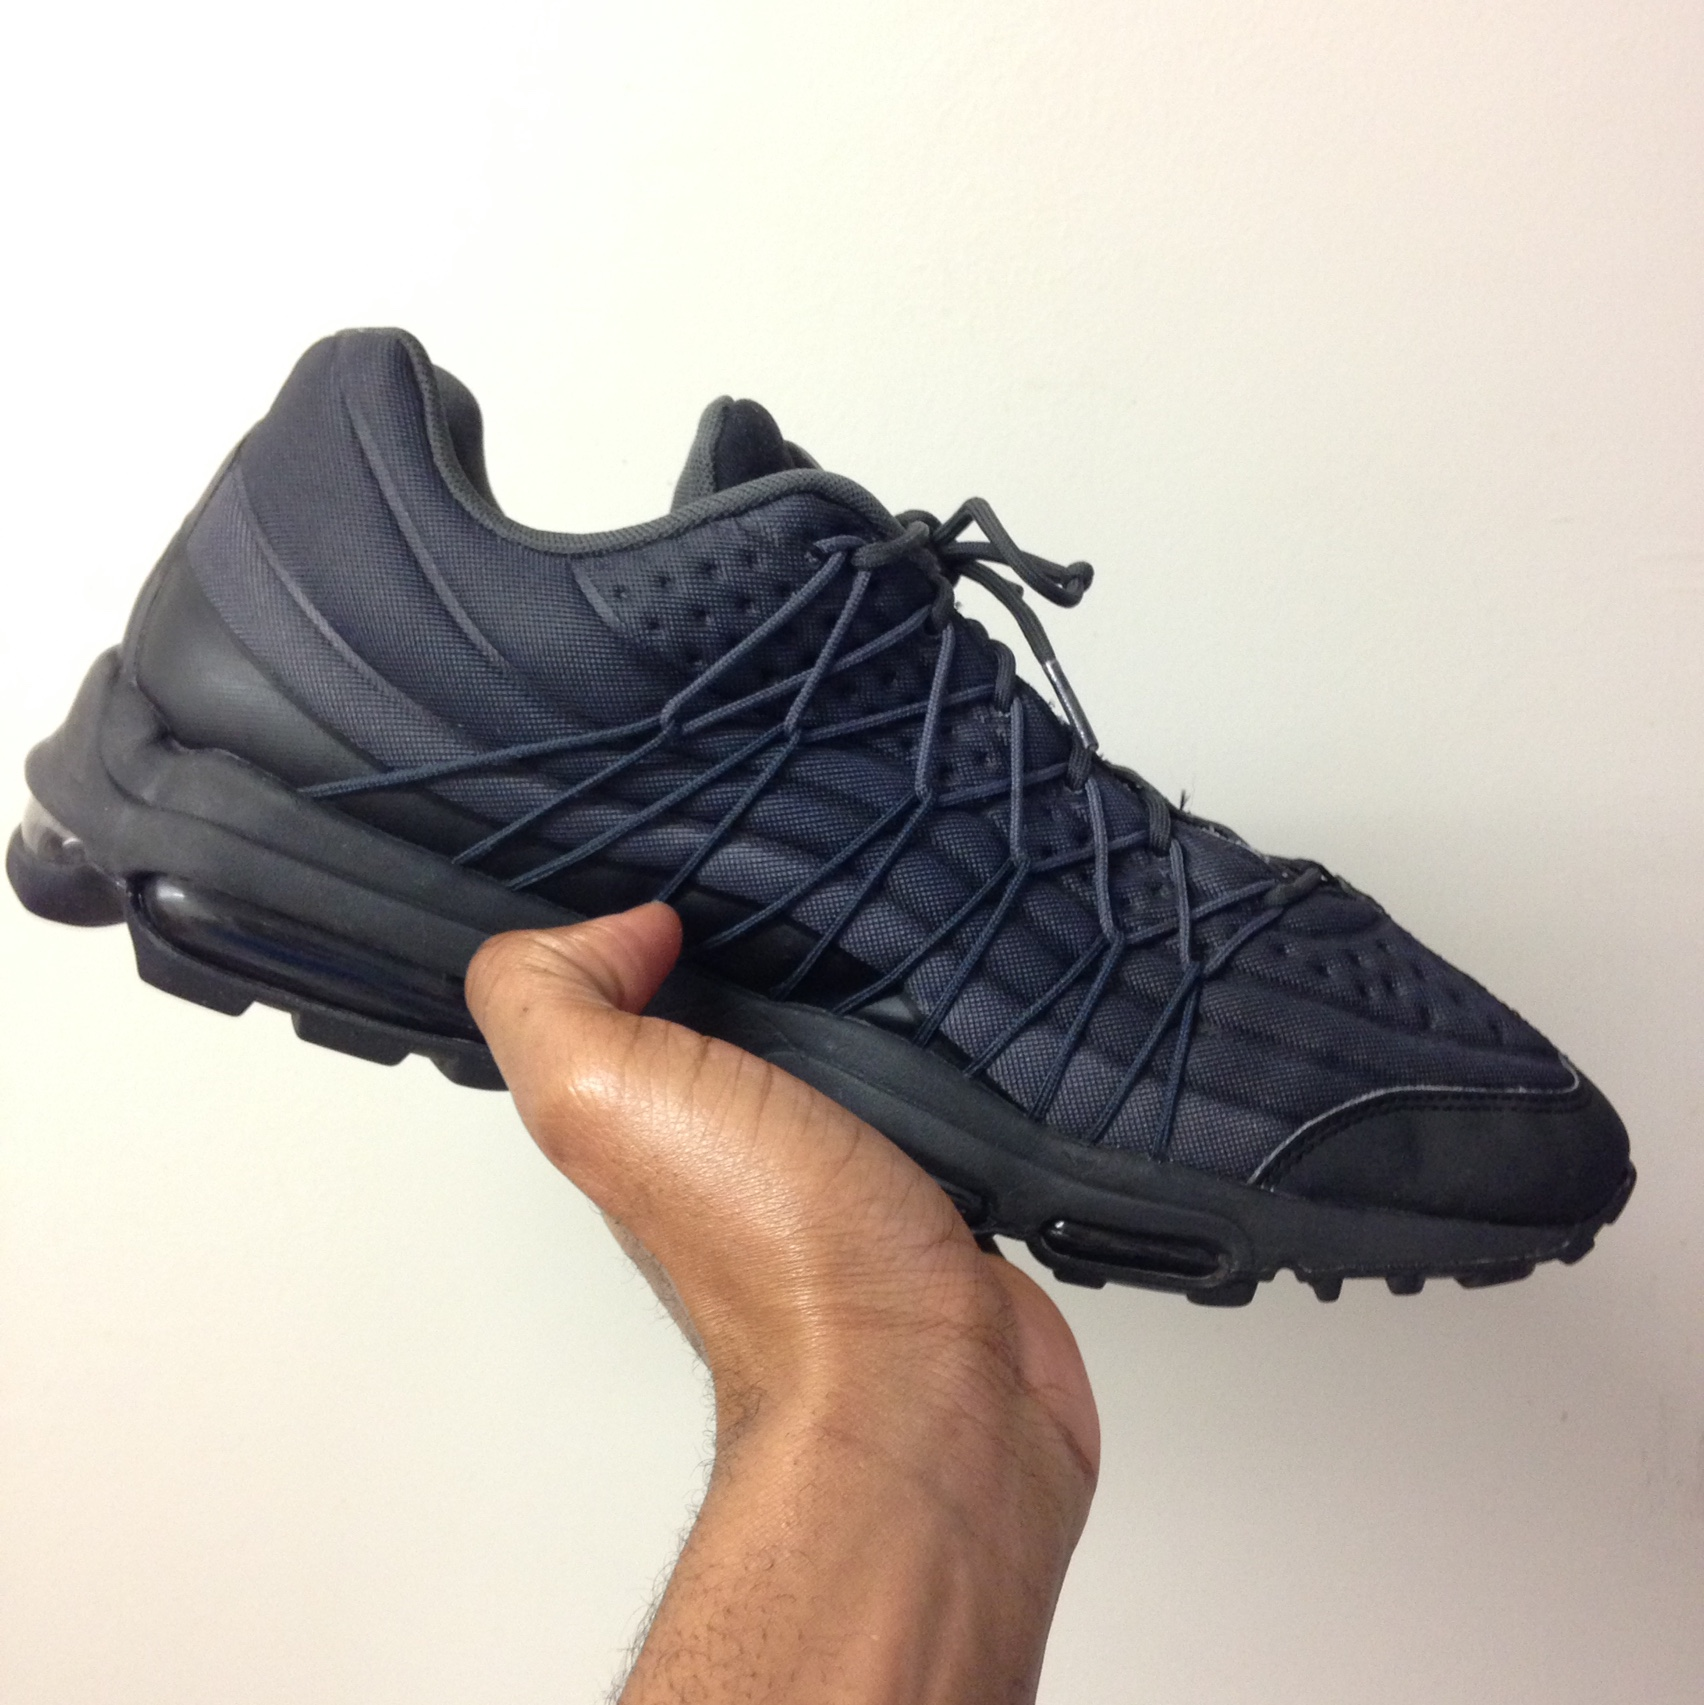 Nike Air Max 95 Ultra SE GreyBlack 910 condition Depop